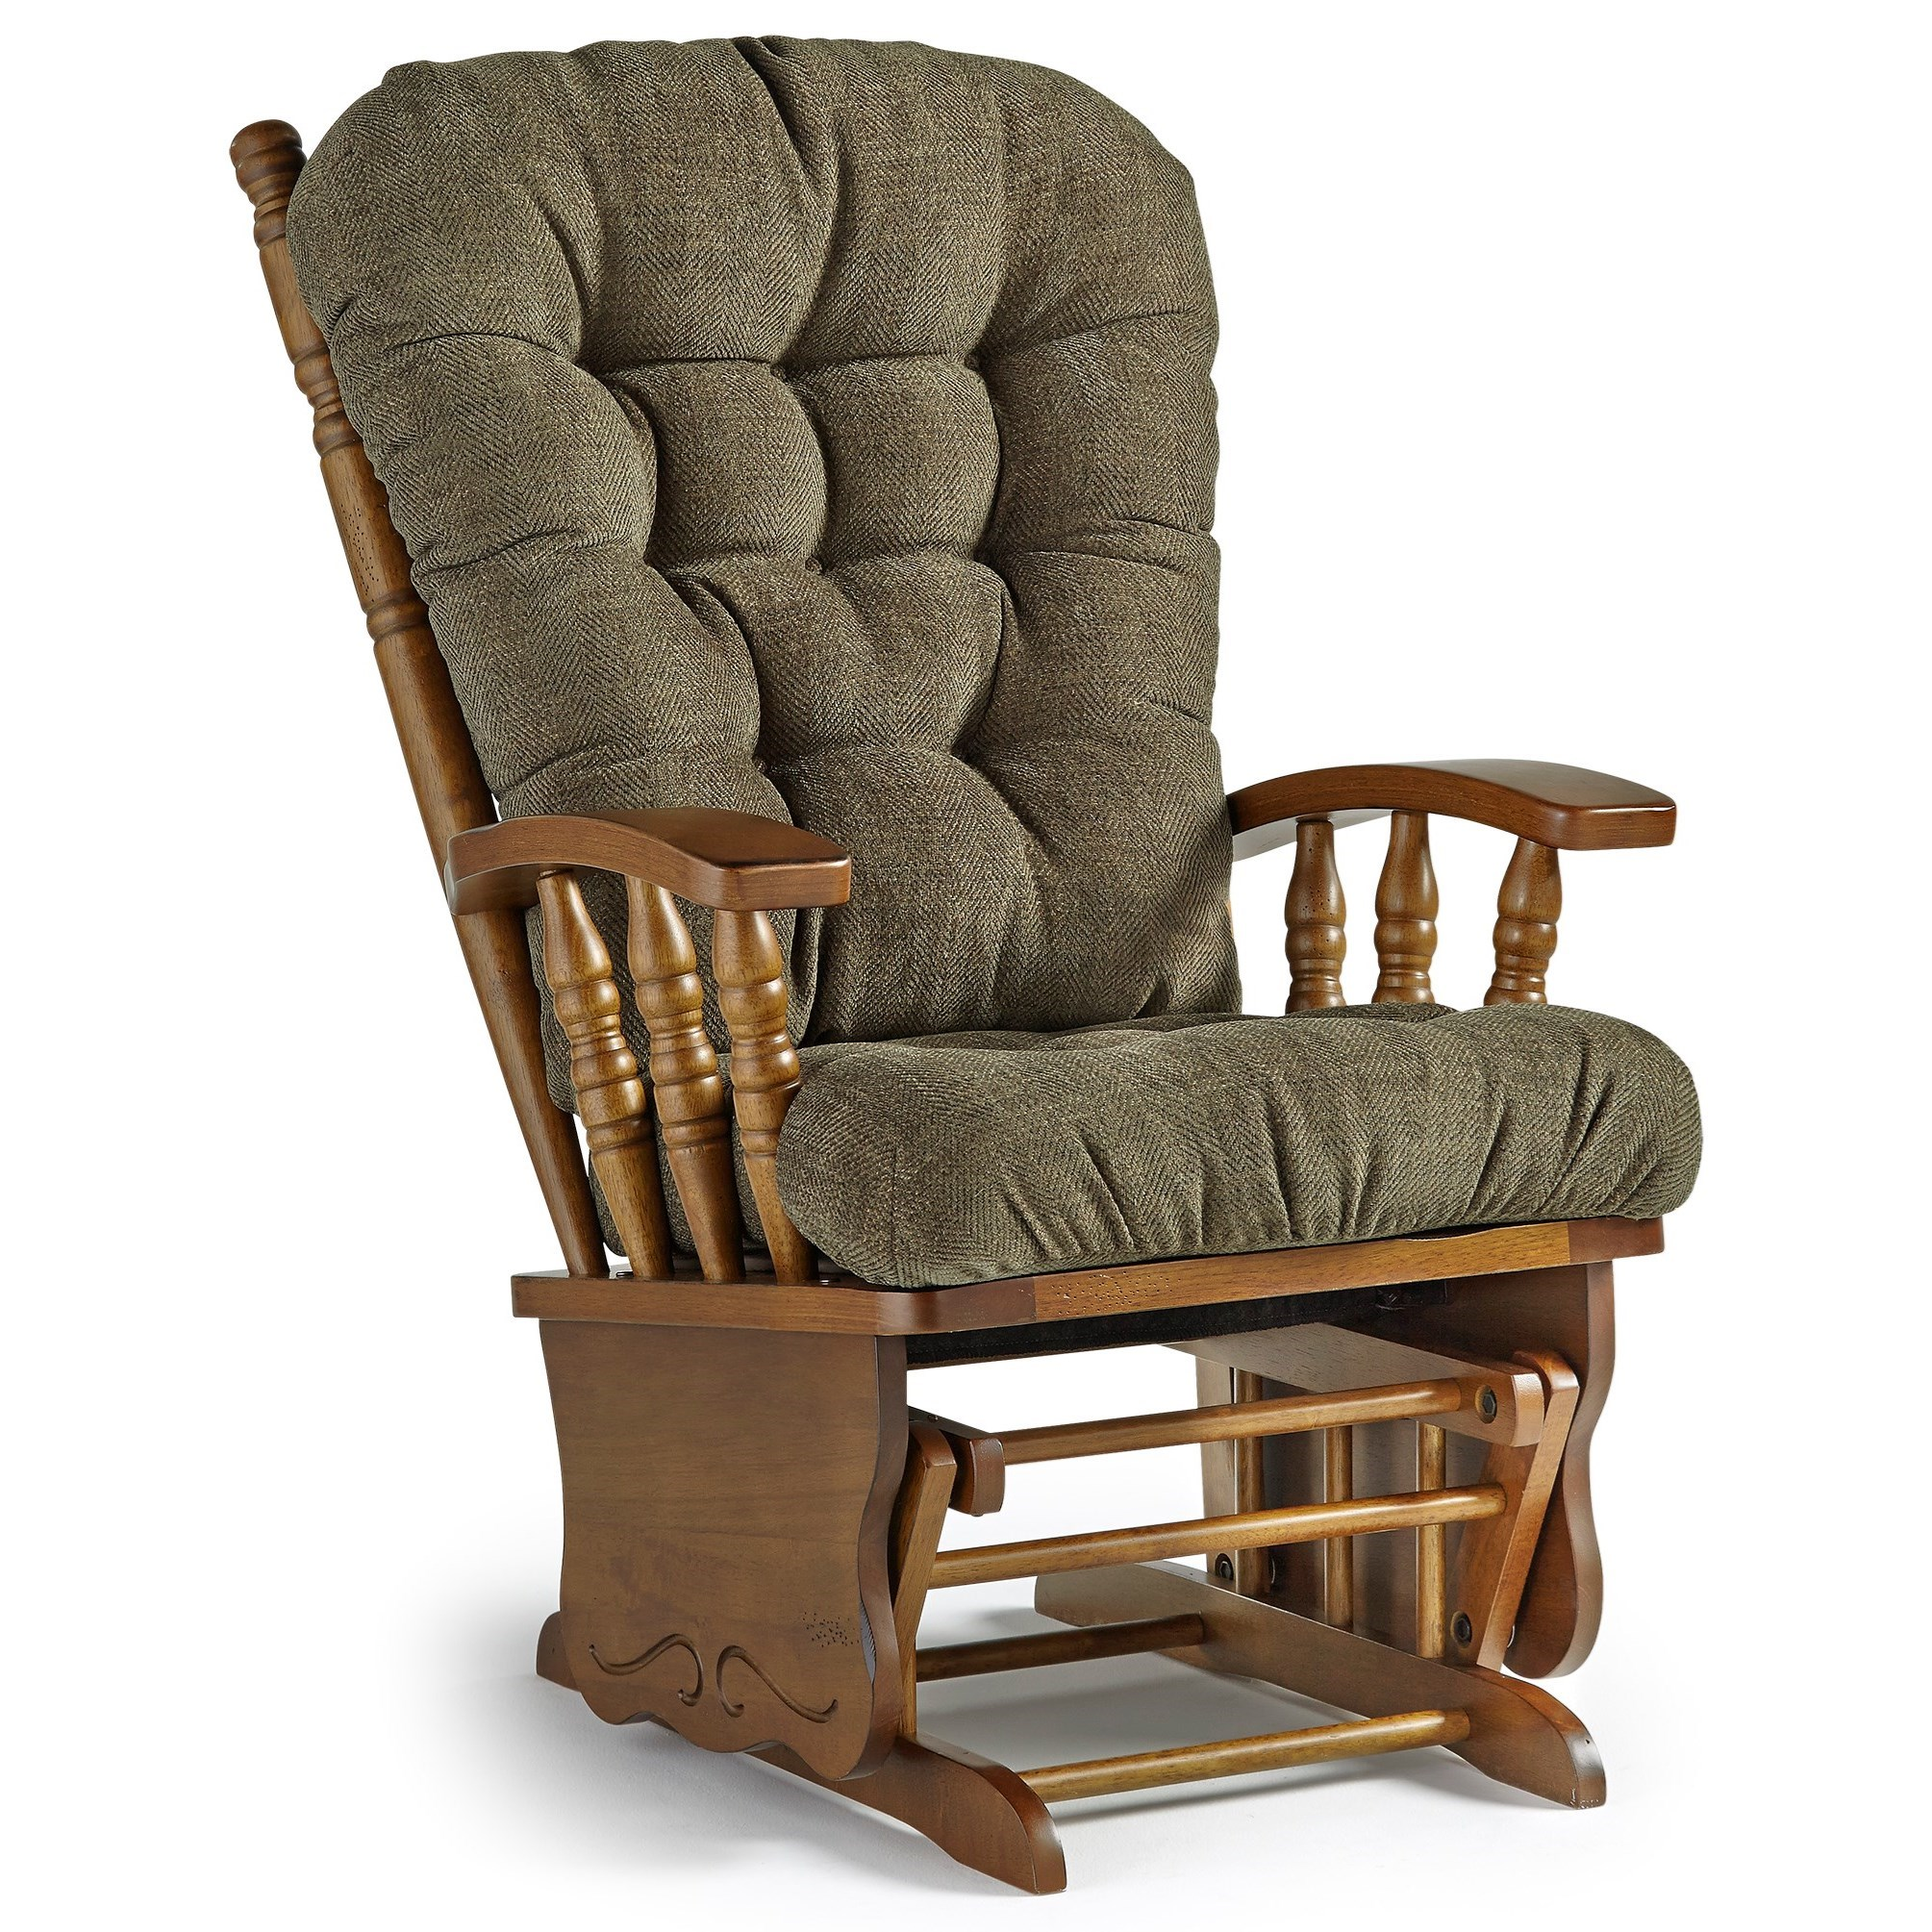 Gliding Rocking Chair Best Home Furnishings Glider Rockers Henley Glider Rocker